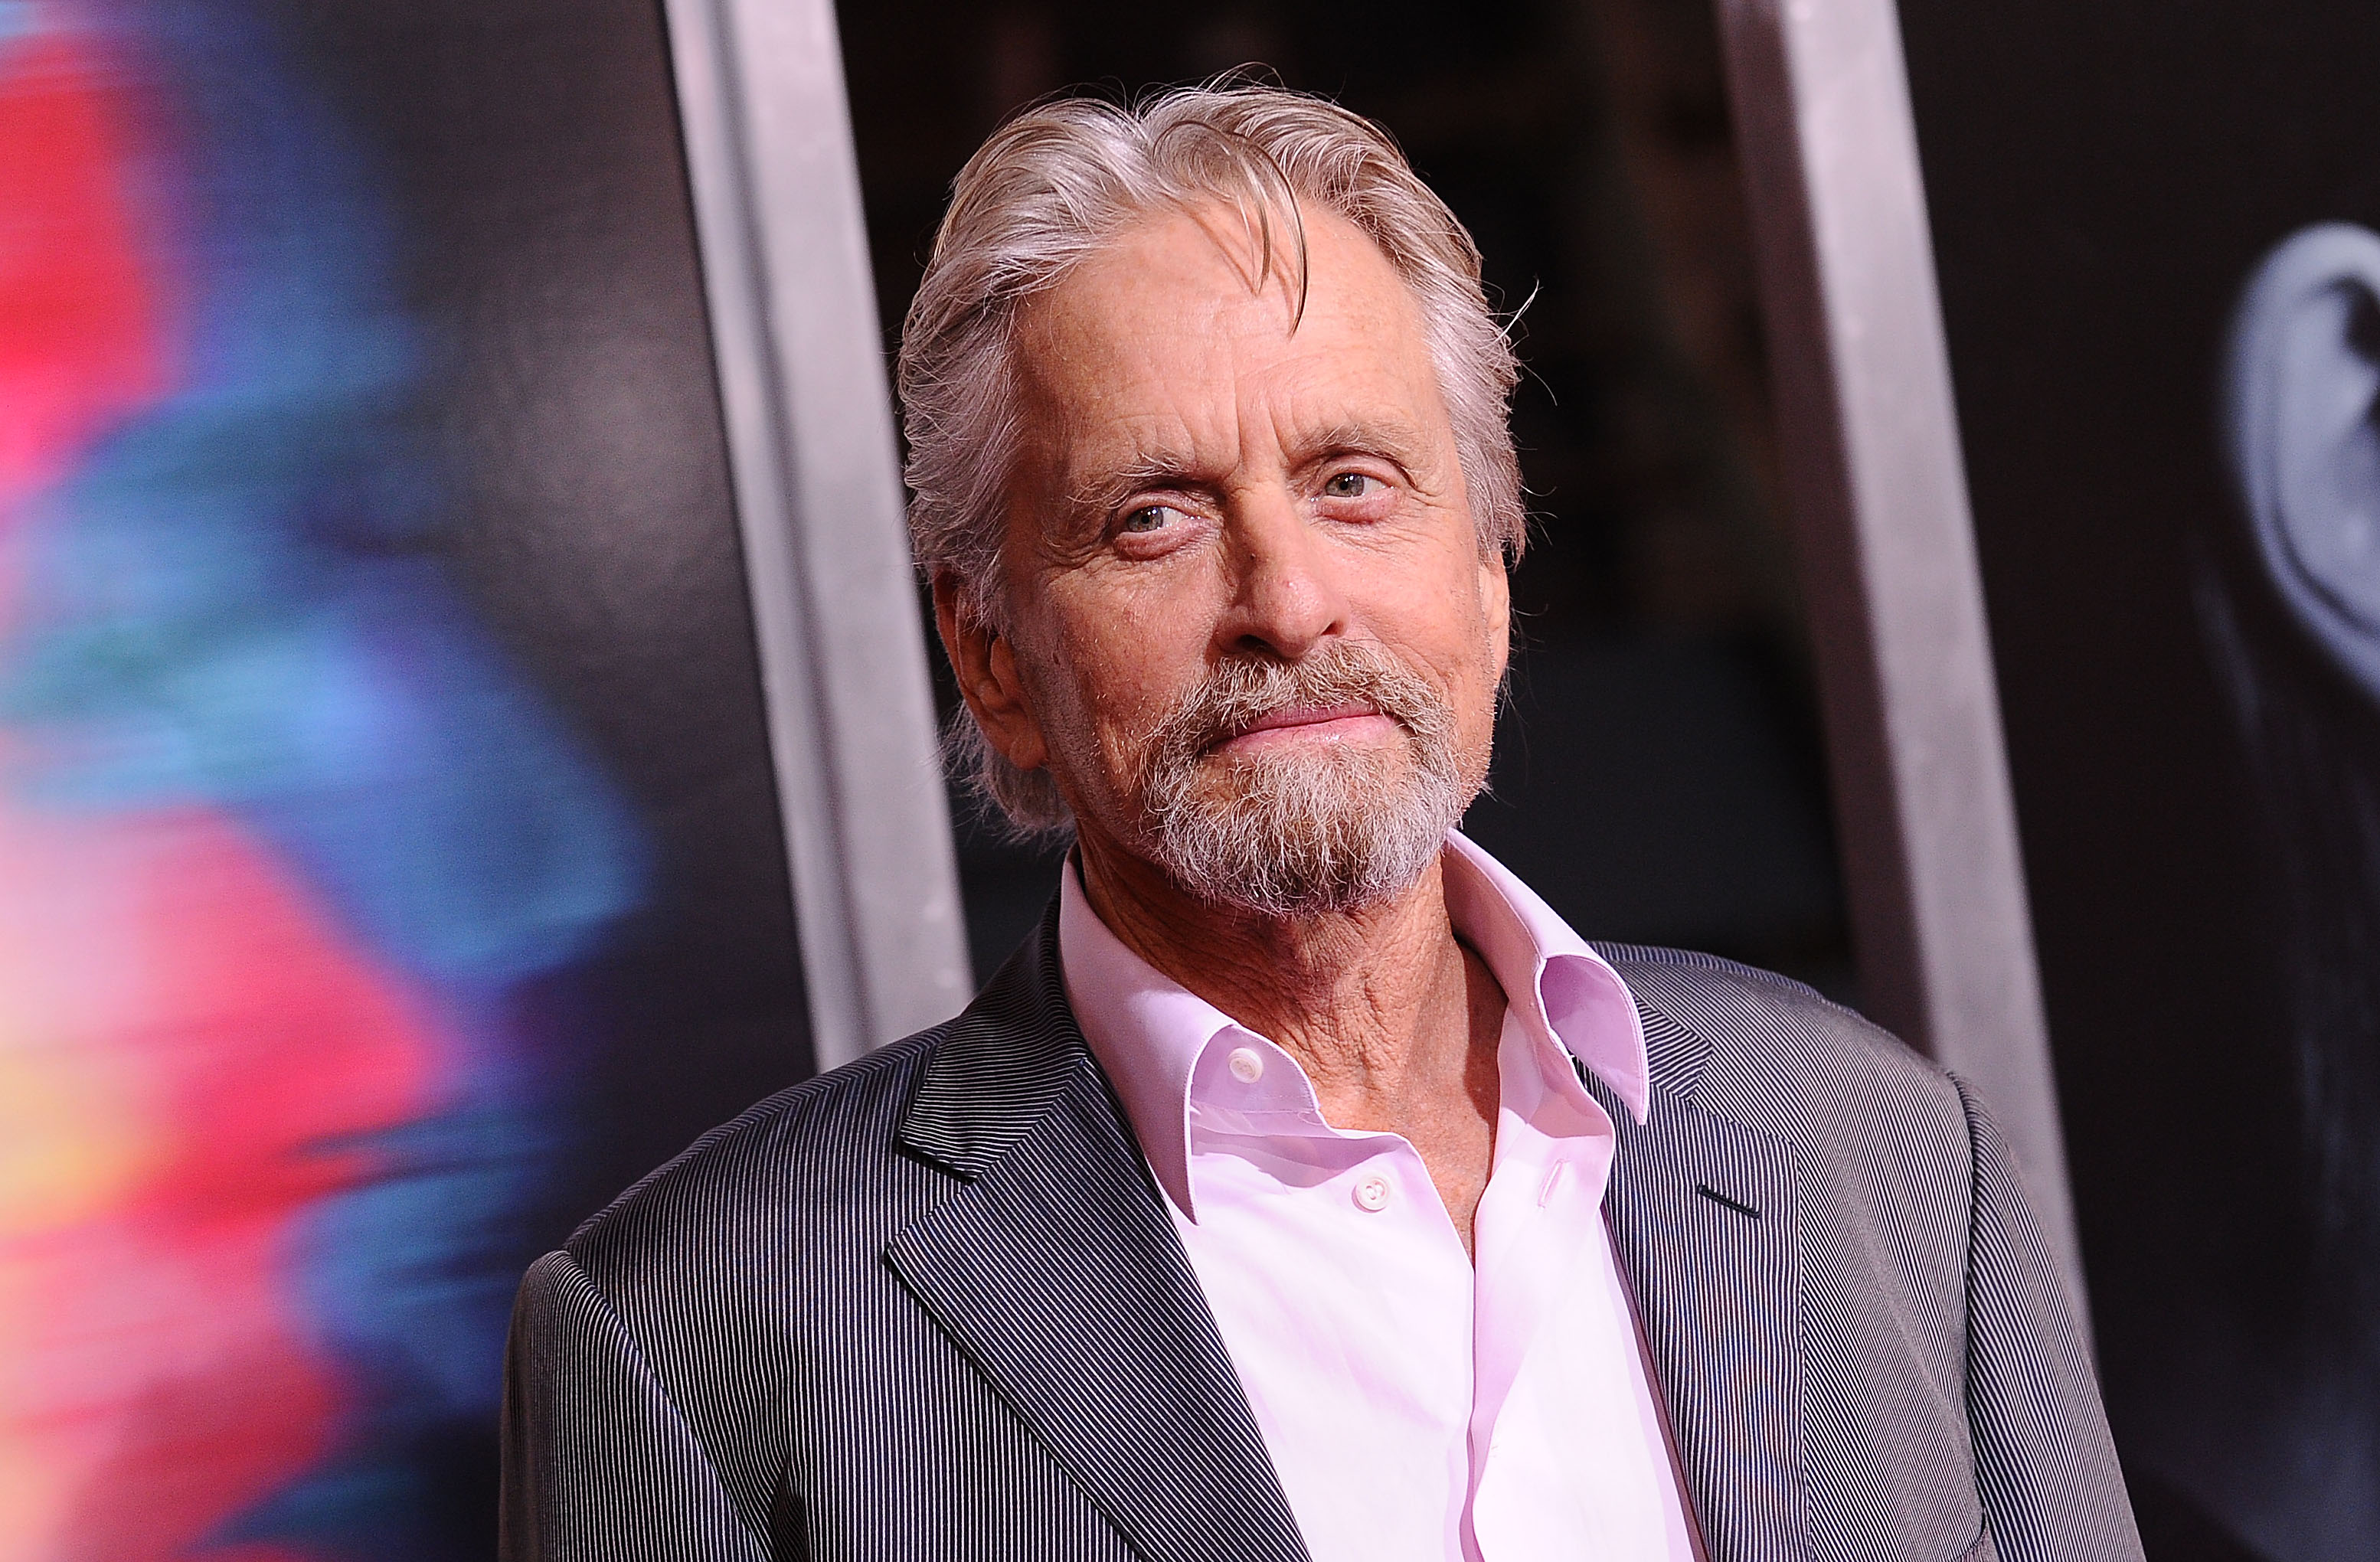 Actor Michael Douglas attends the premiere of  Flatliners  at The Theatre at Ace Hotel on September 27, 2017 in Los Angeles, California.